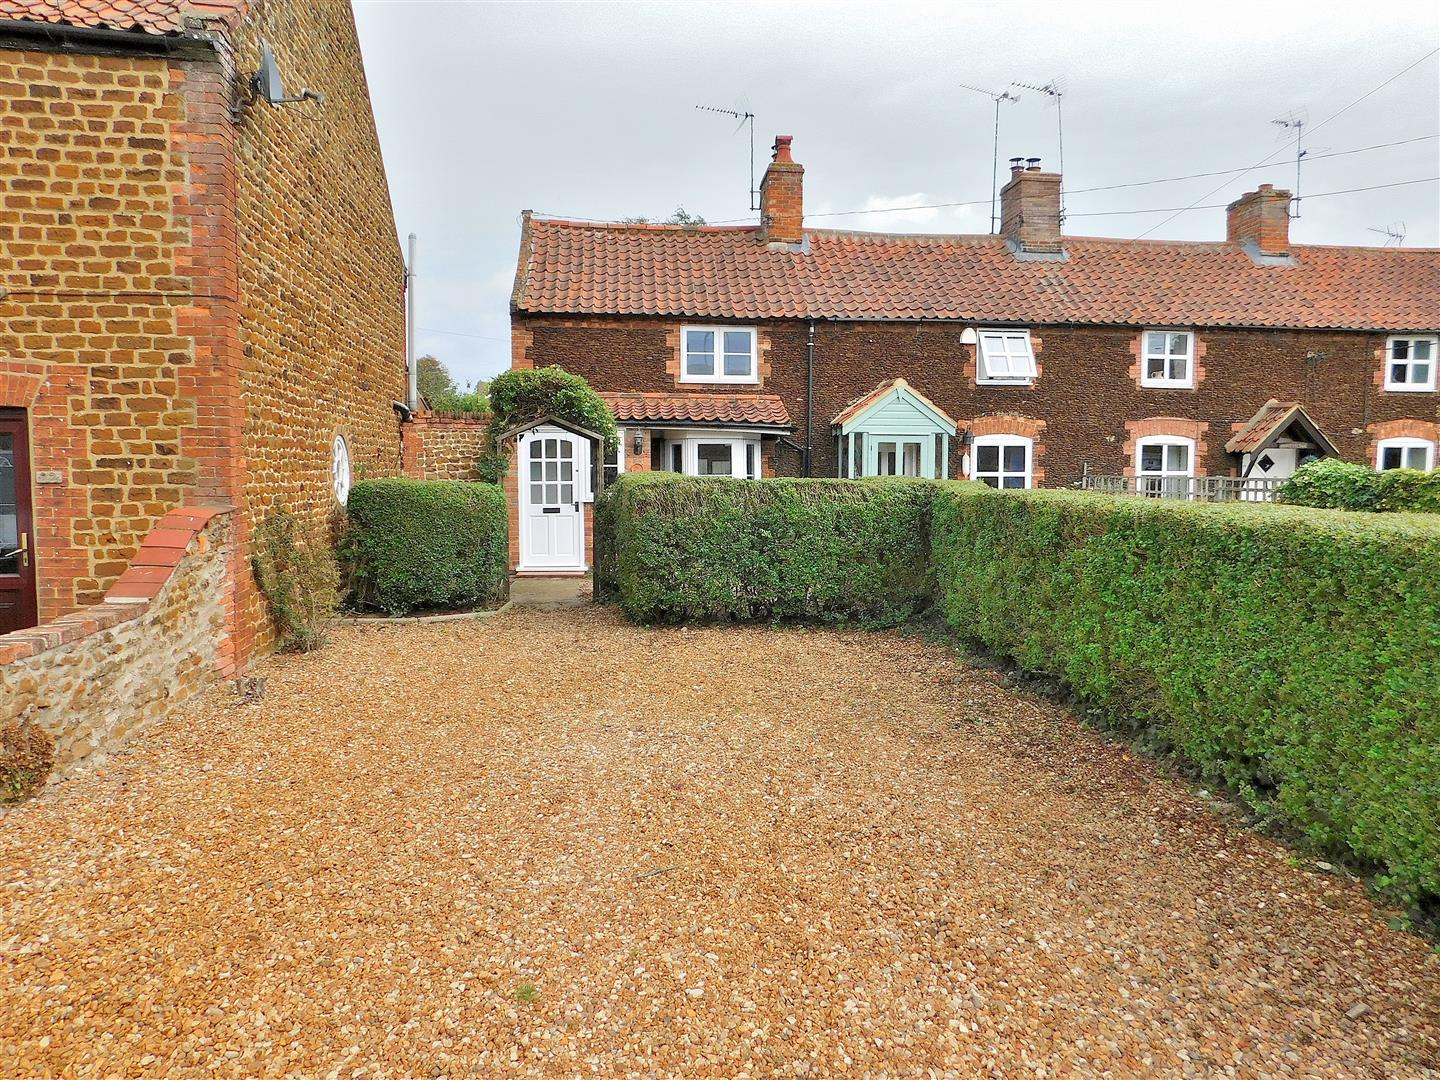 2 bed cottage for sale in King's Lynn, PE31 6PN, PE31